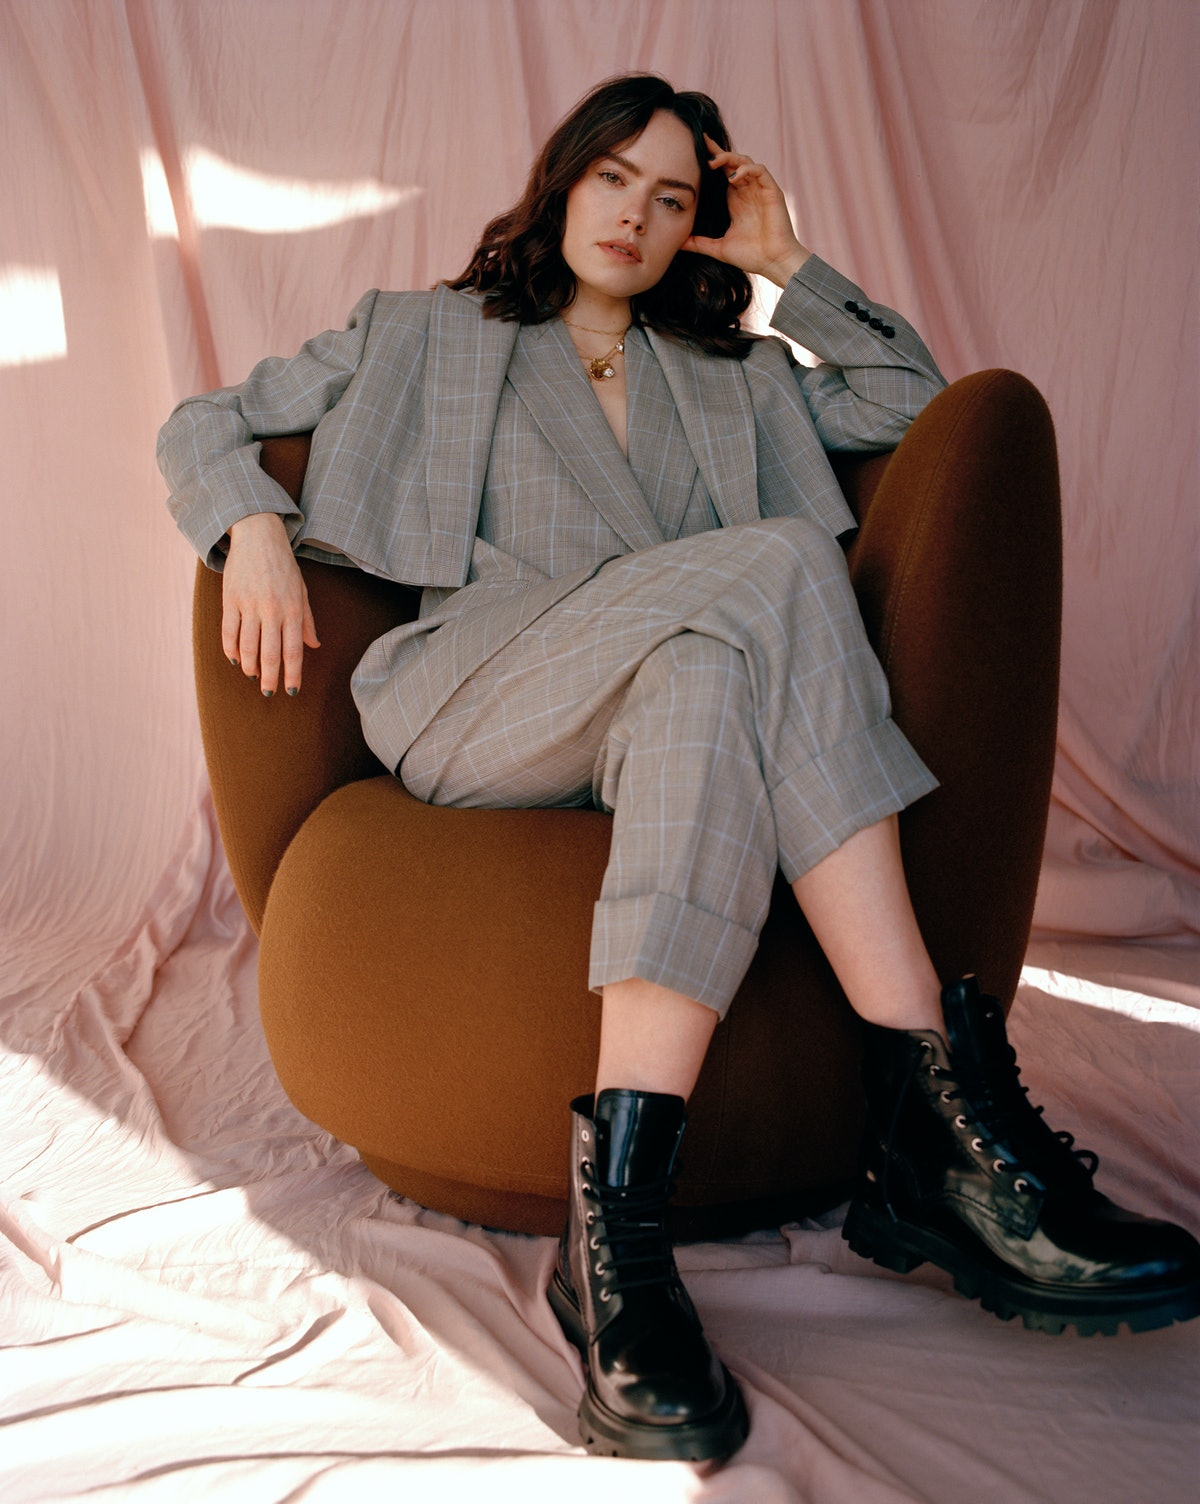 TZR cover star Daisy Ridley sitting down in a chair wearing a gray suit by Alexander McQueen.